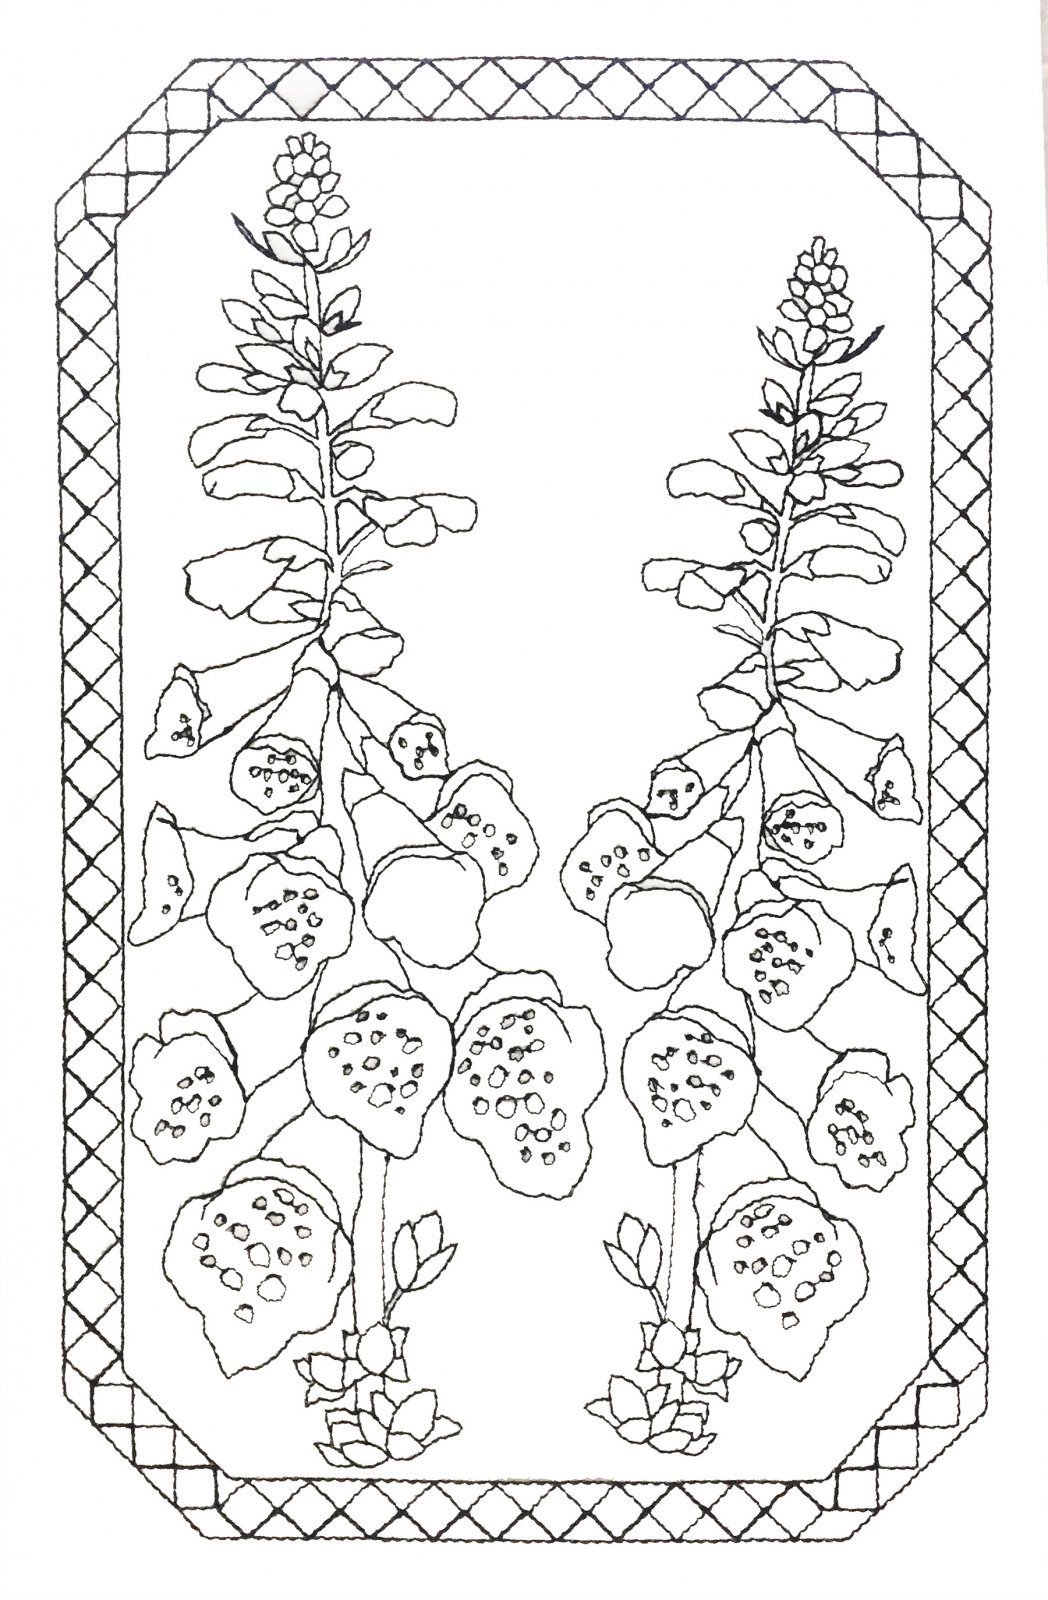 Pre-Stitched Art Applique blocks for coloring- Large Foxglove (QA-14F)